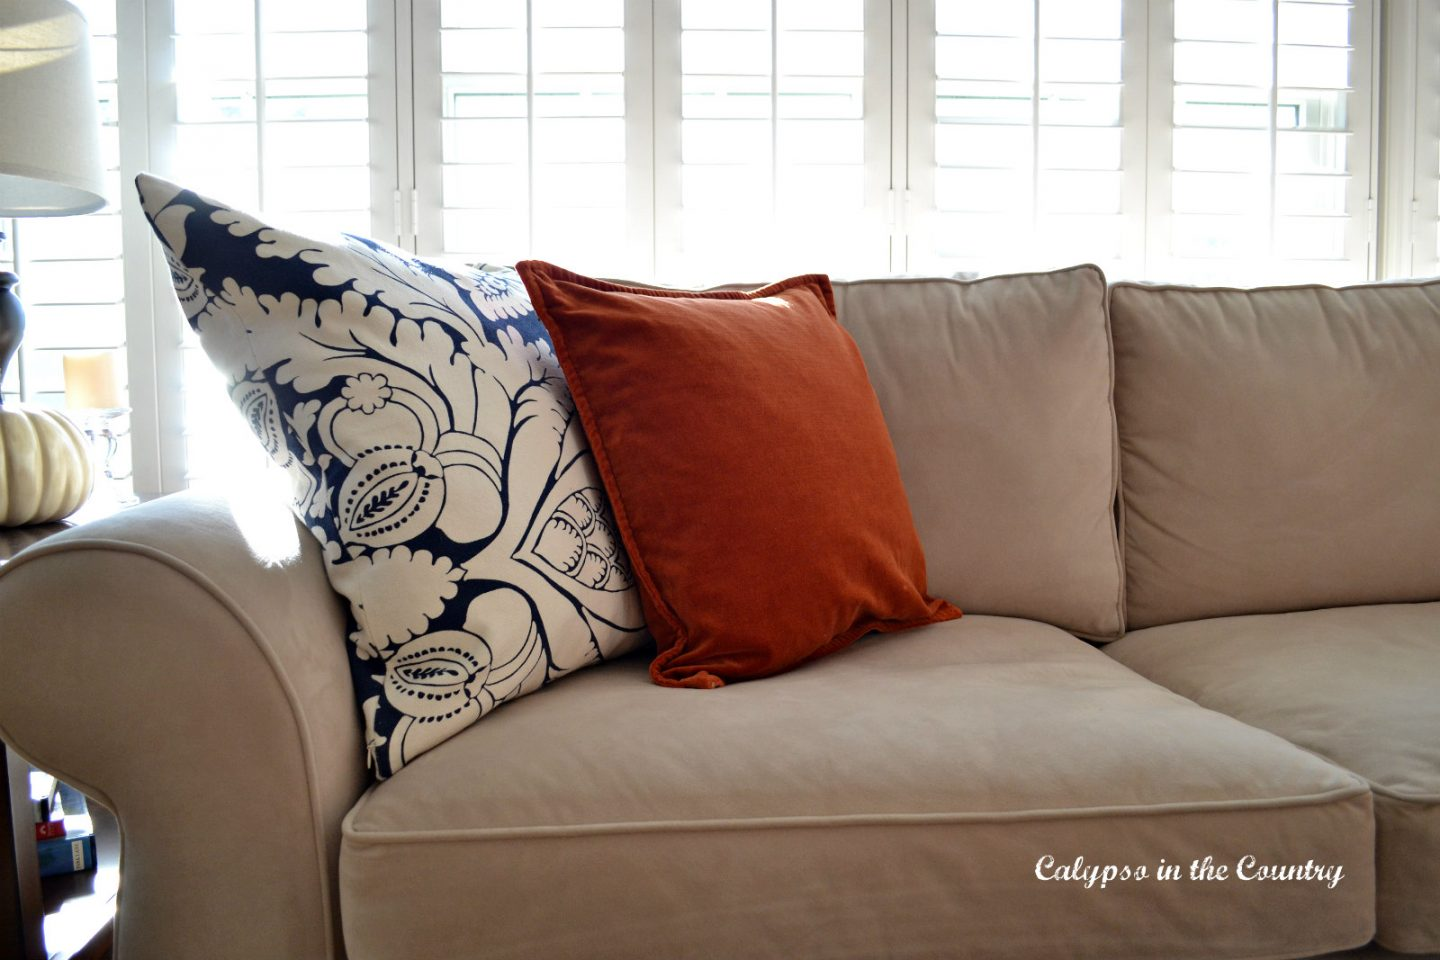 Adding orange to update pillows for fall